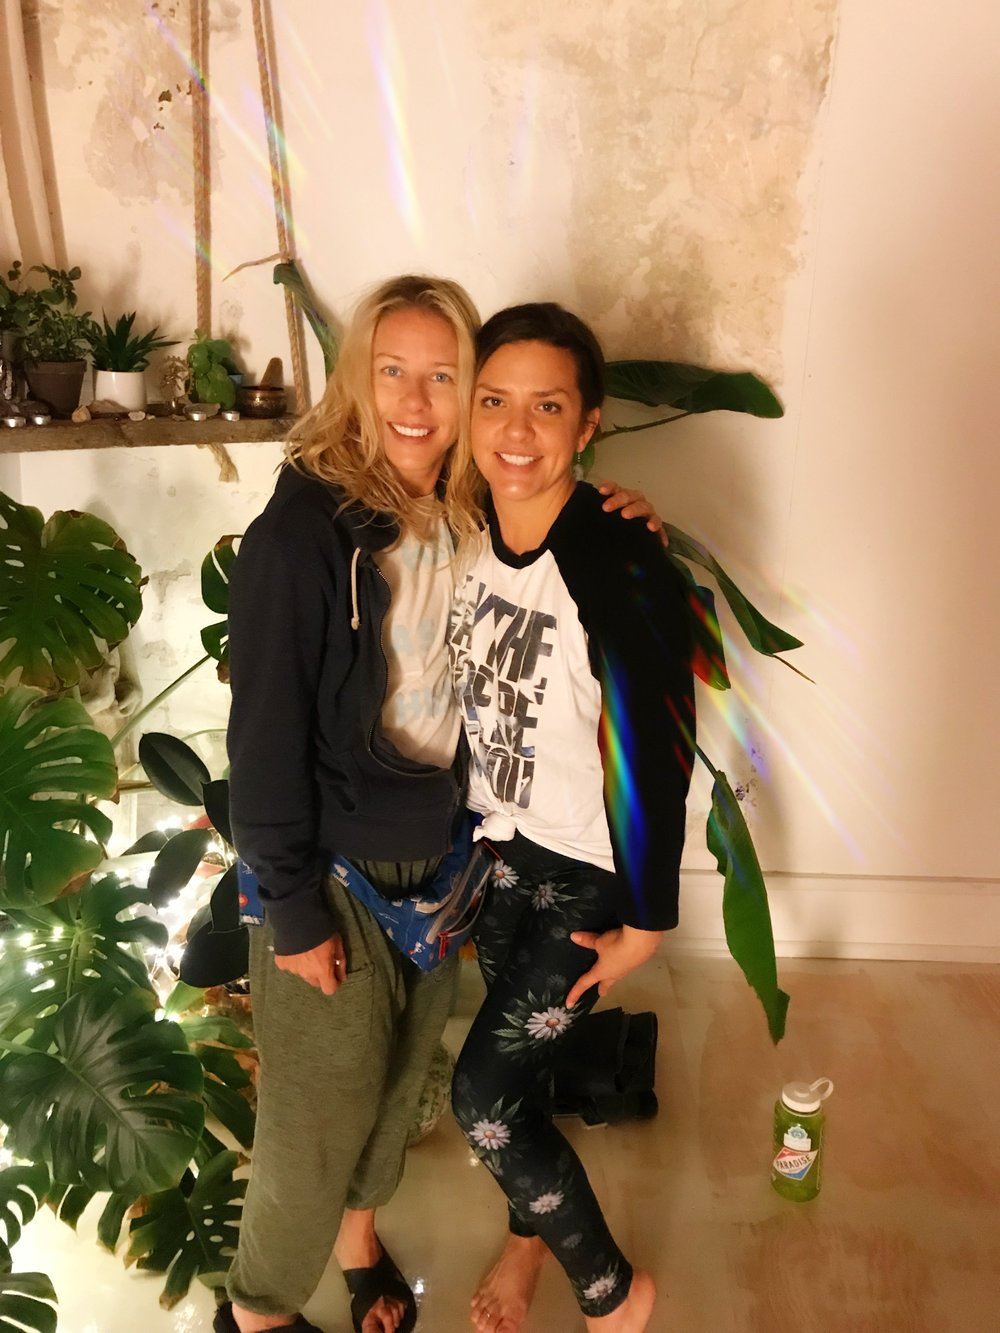 Jen Hicks & our Founder Heather Alexandar at Urban Sanctuary after an epic Ganja Yoga class